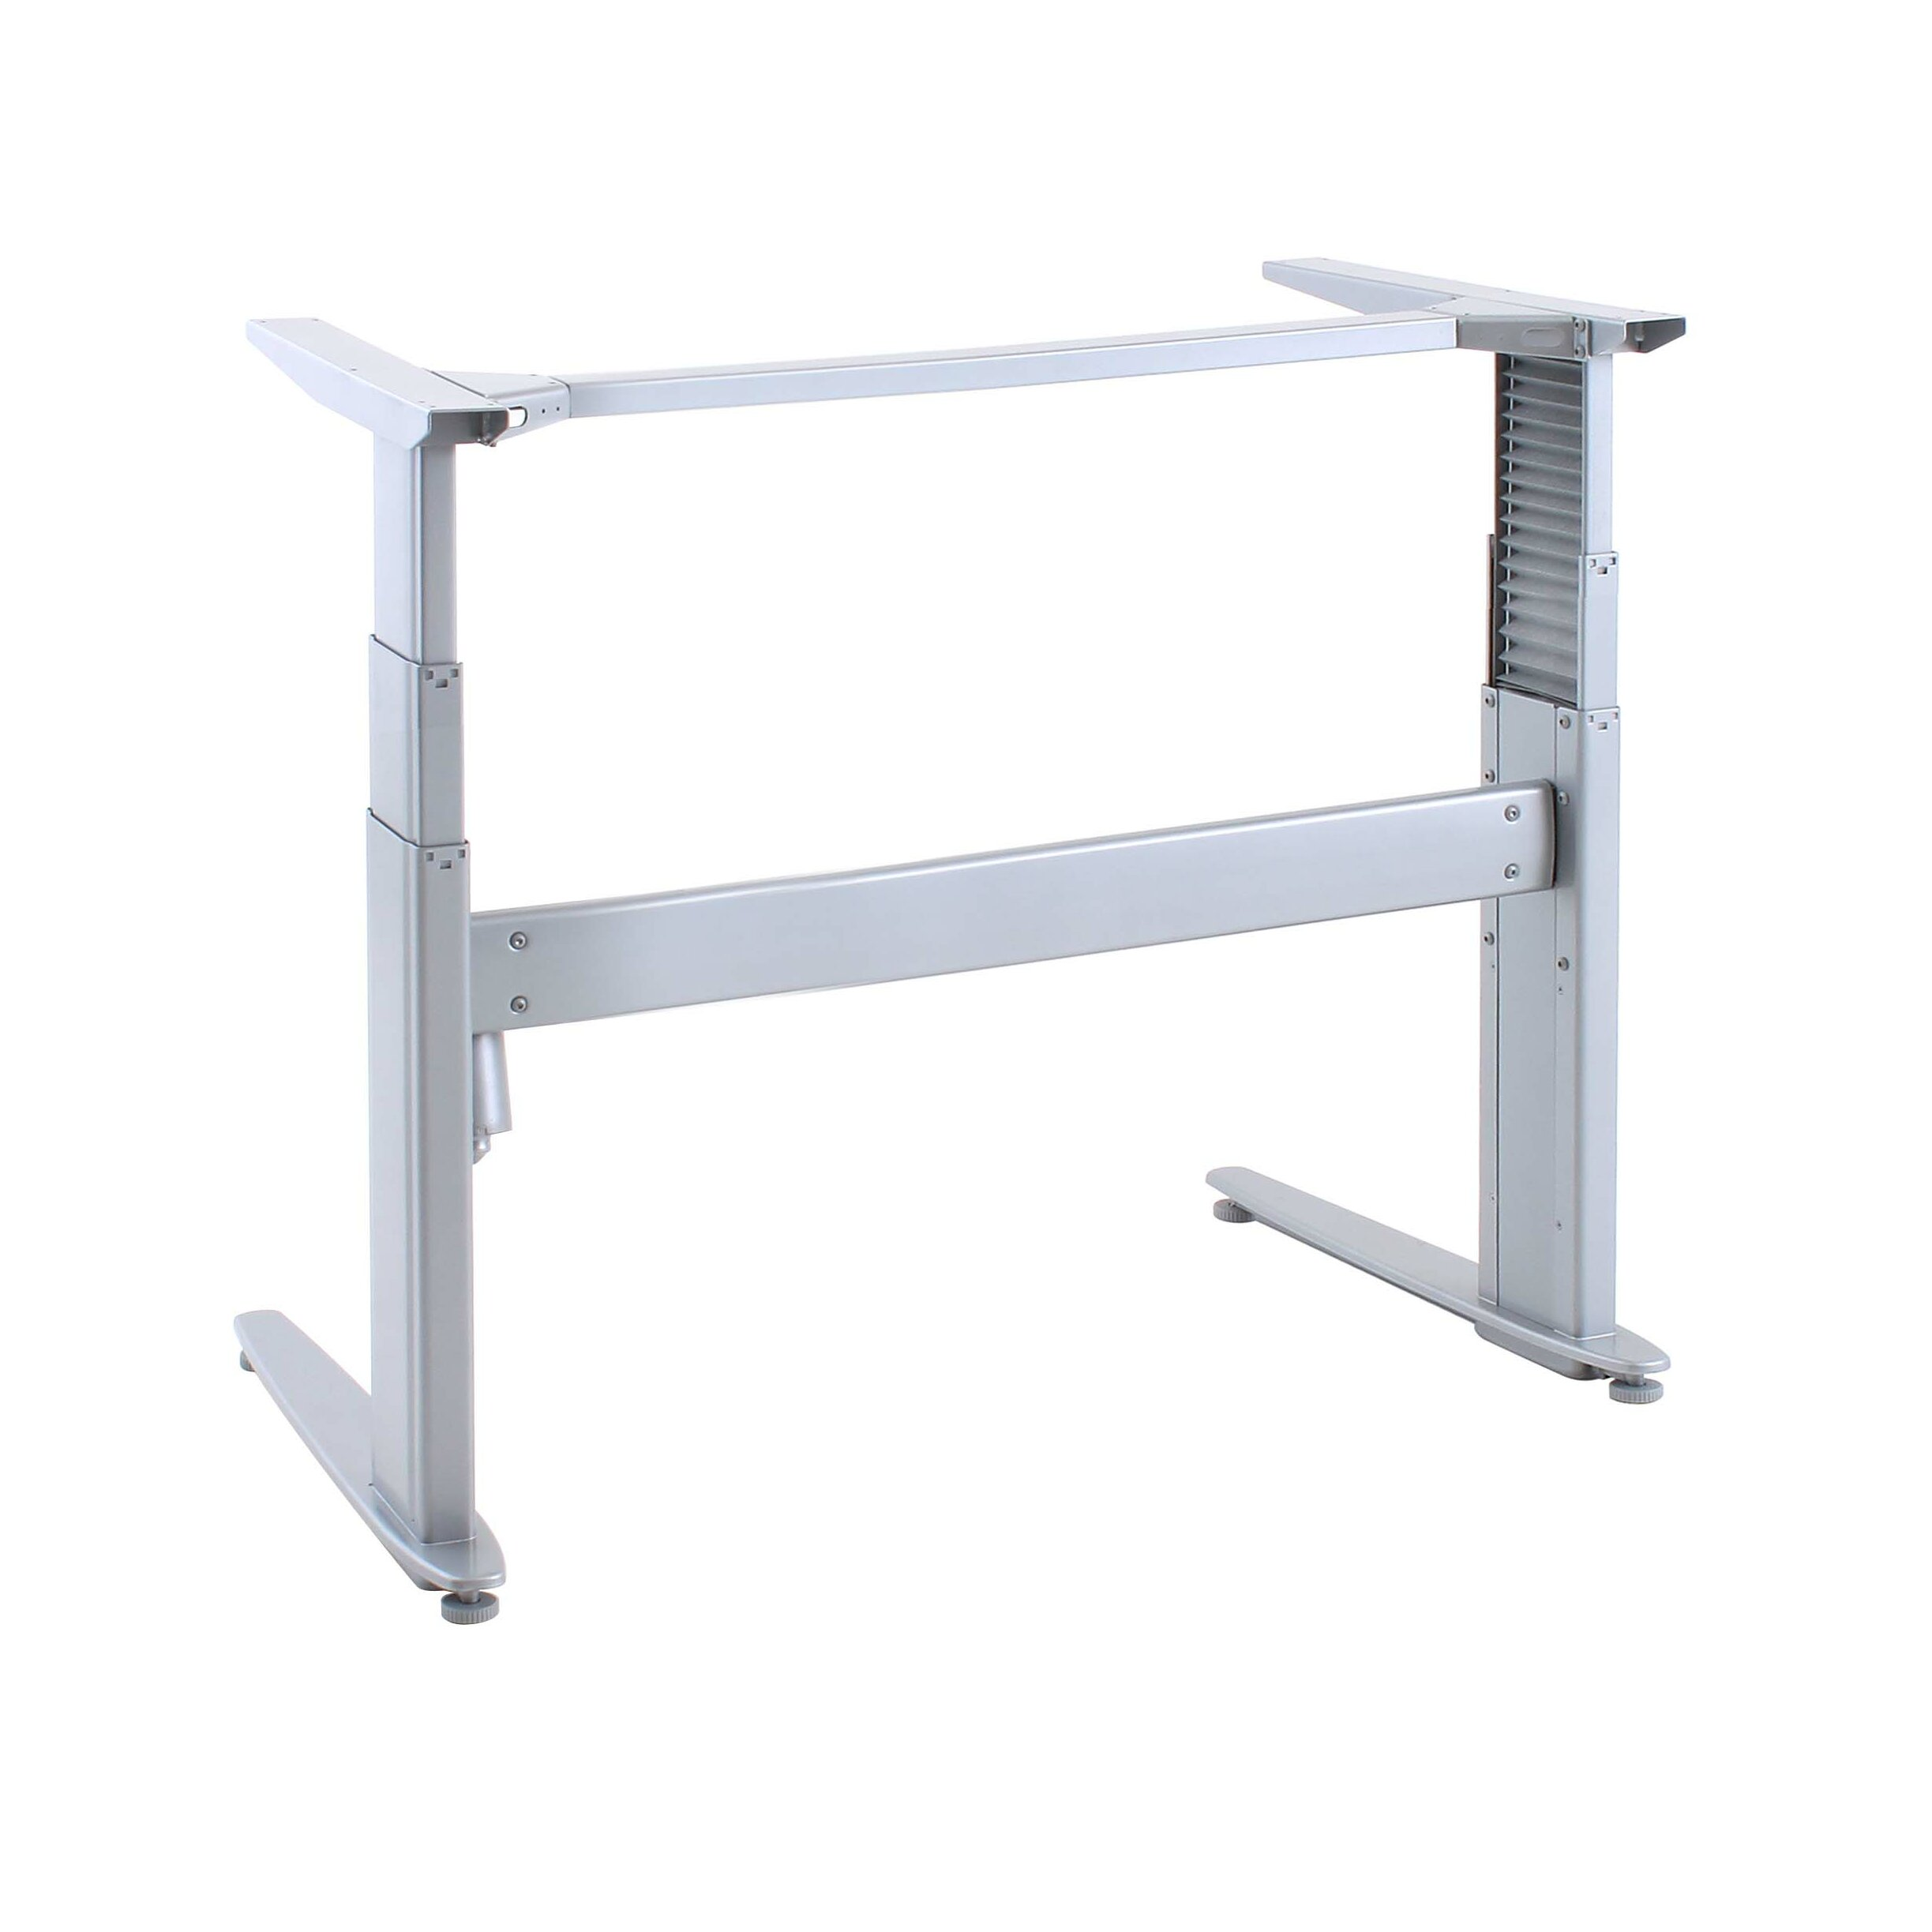 501 25 Series puter Desk with Electronic Height